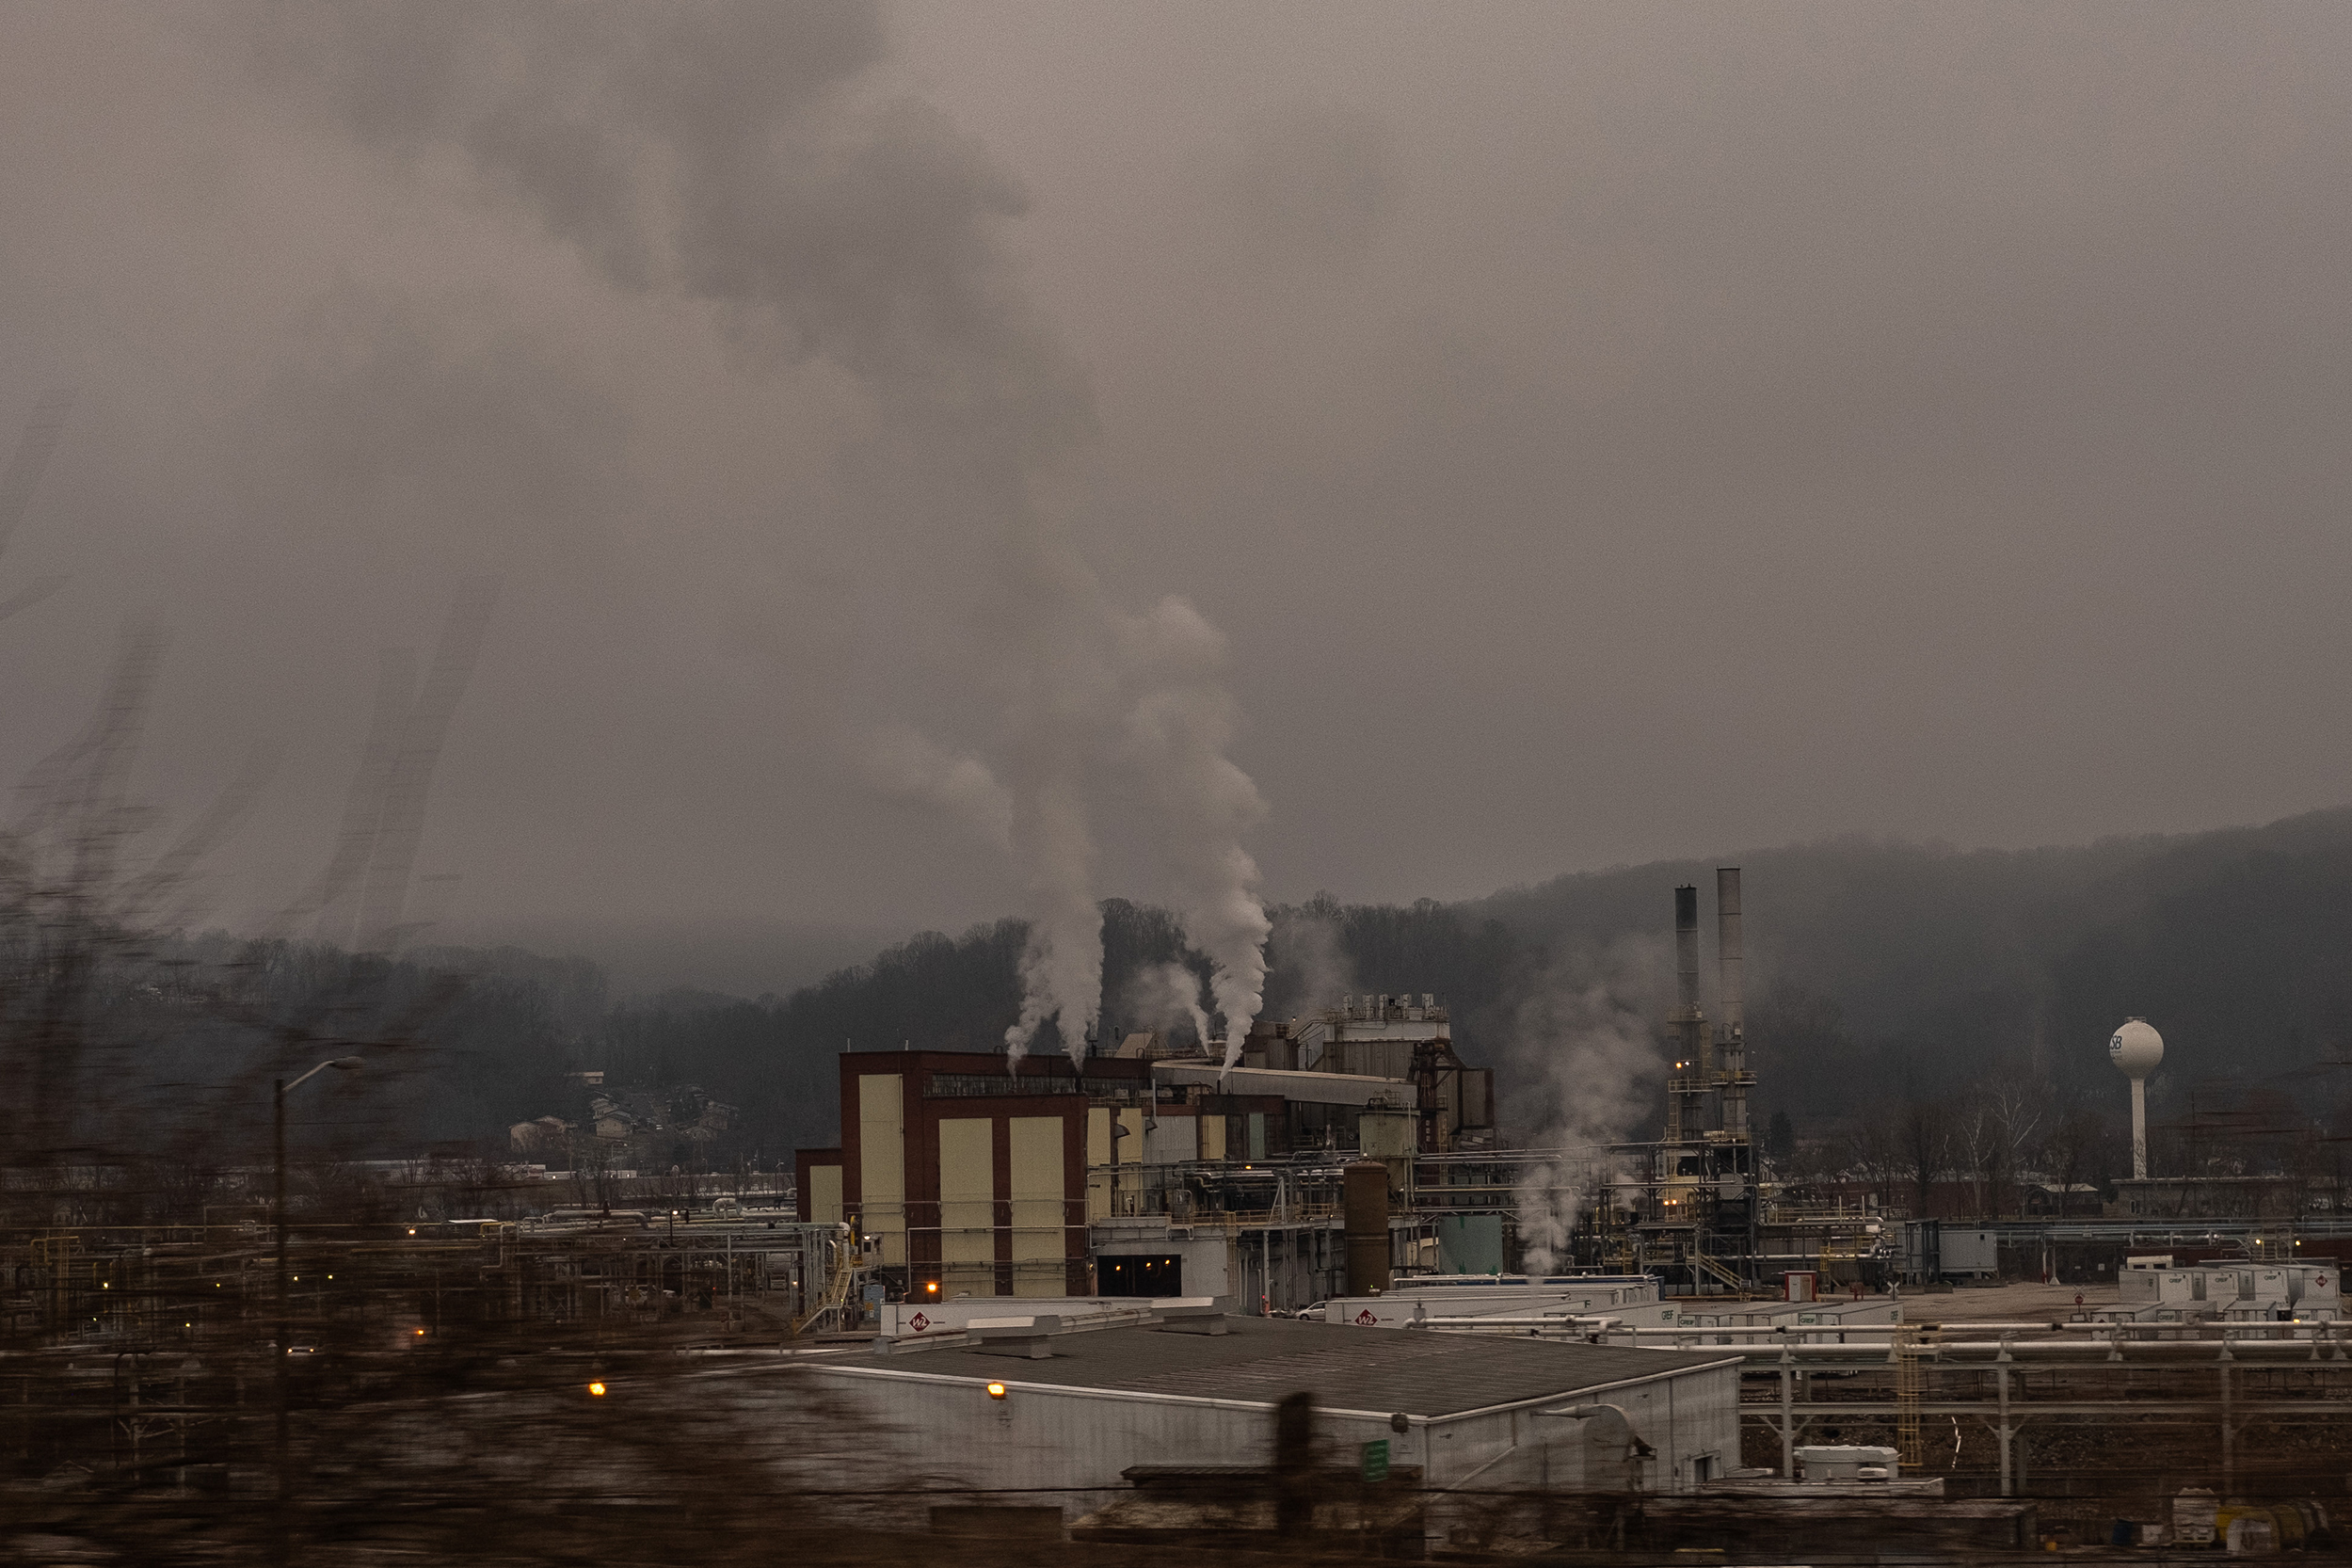 Charleston, West Virginia on the morning of March 17, 2021.